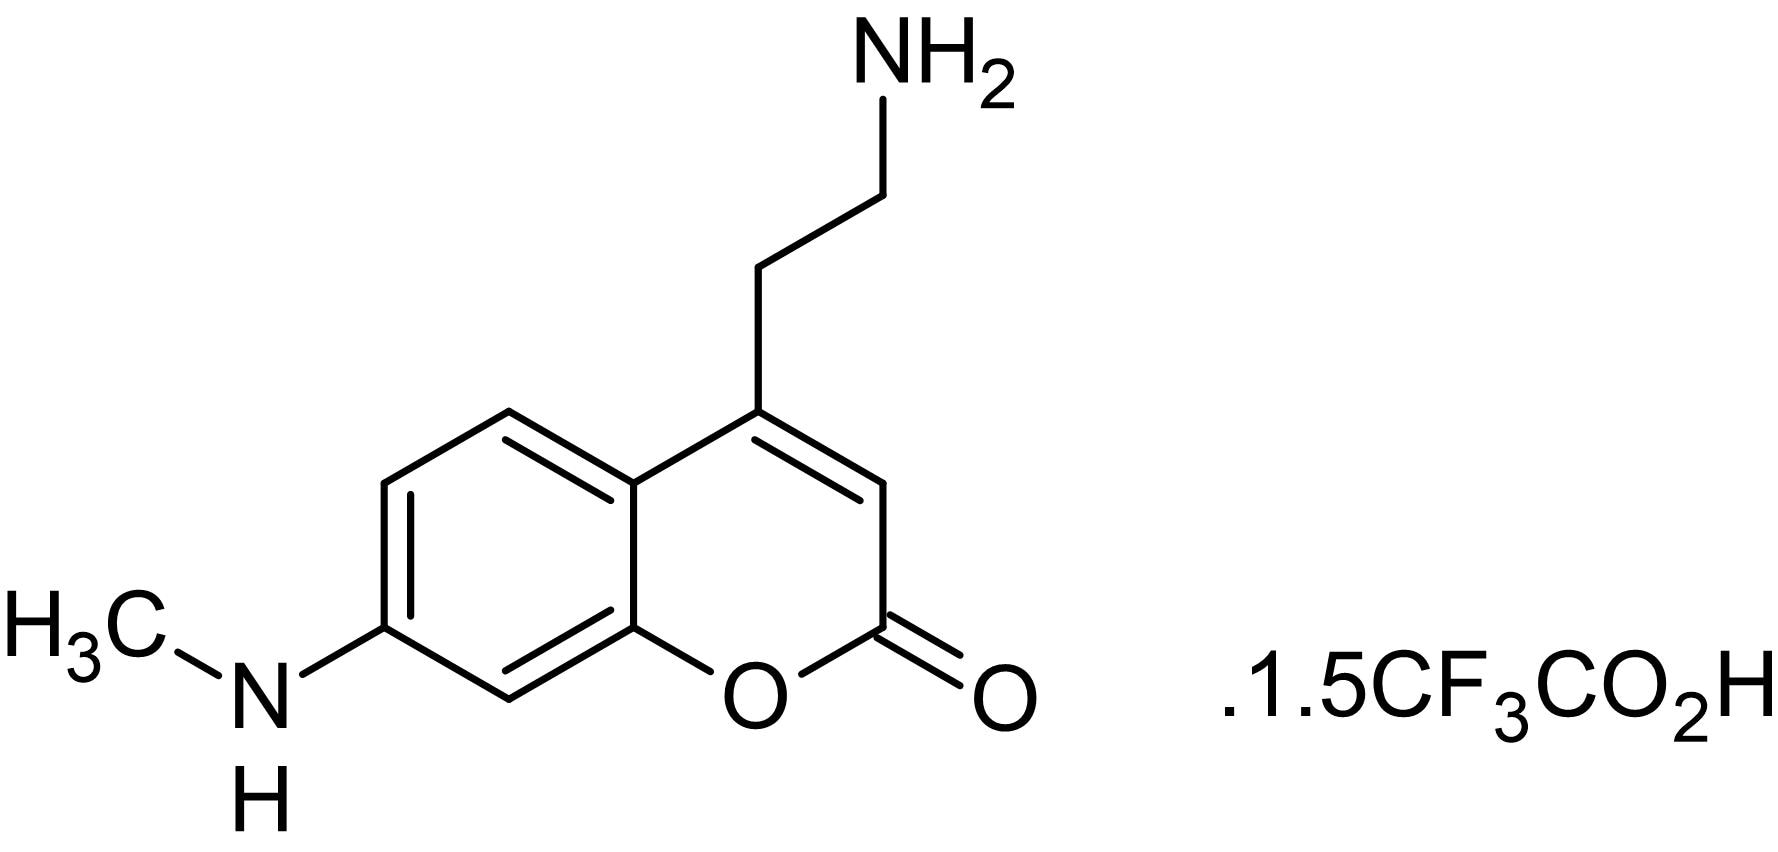 Chemical Structure - FFN206, fluorescent VMAT2 substrate (ab144554)